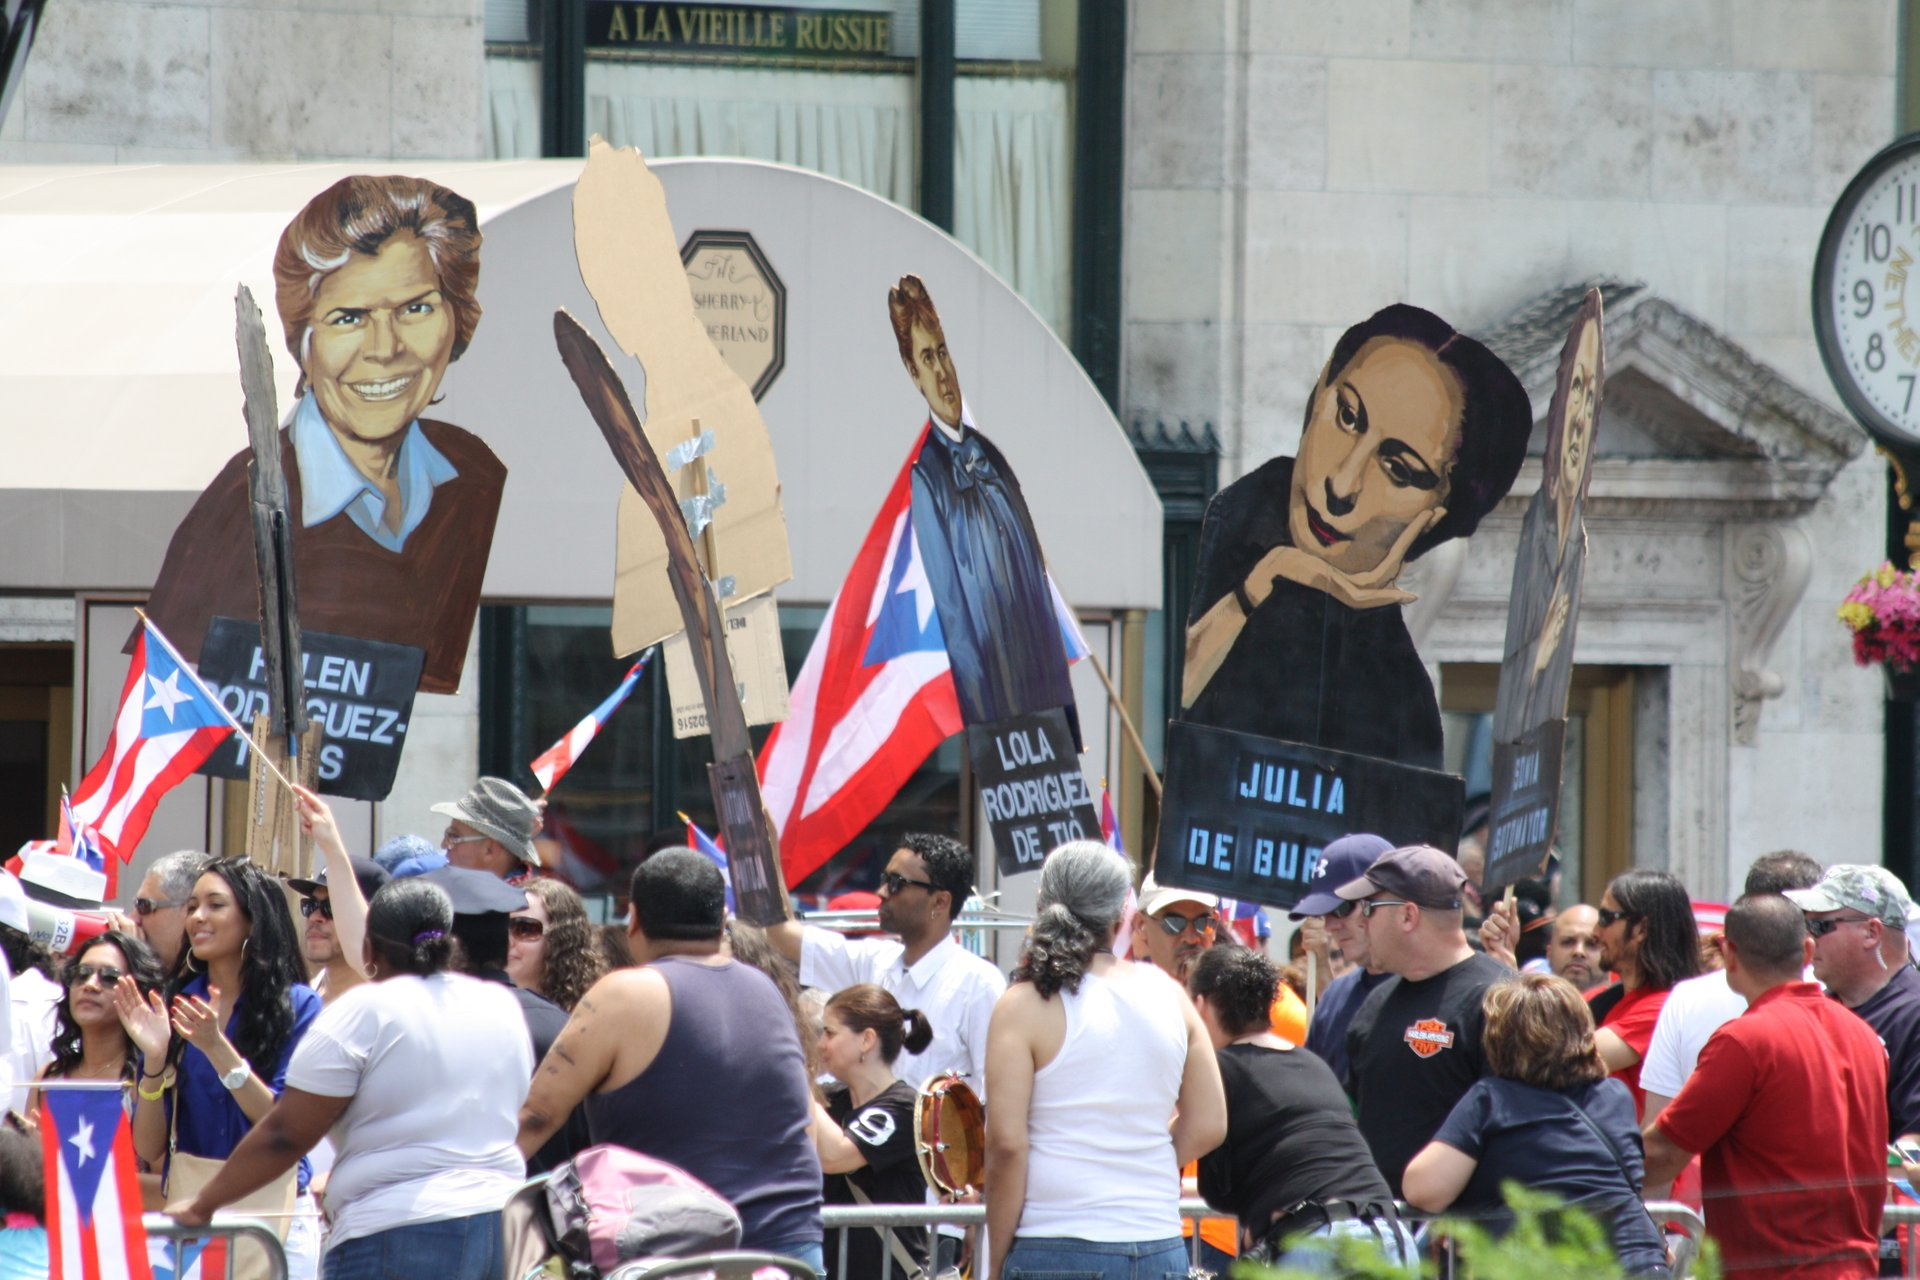 Best time for National Puerto Rican Day Parade in New York 2020